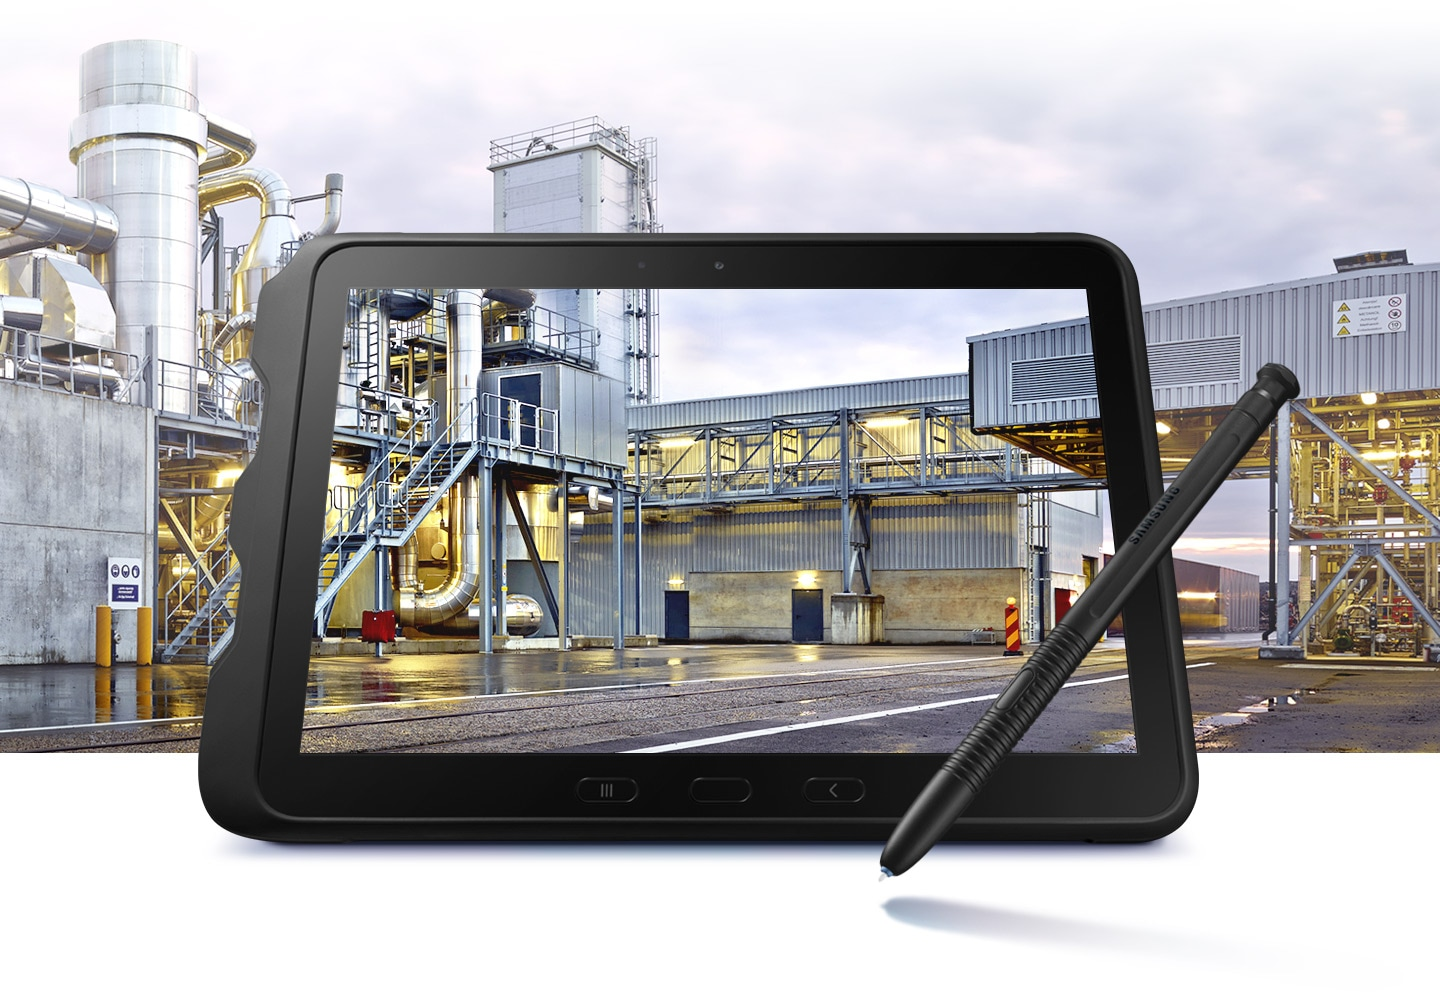 A Rugged tablet for business anywhere